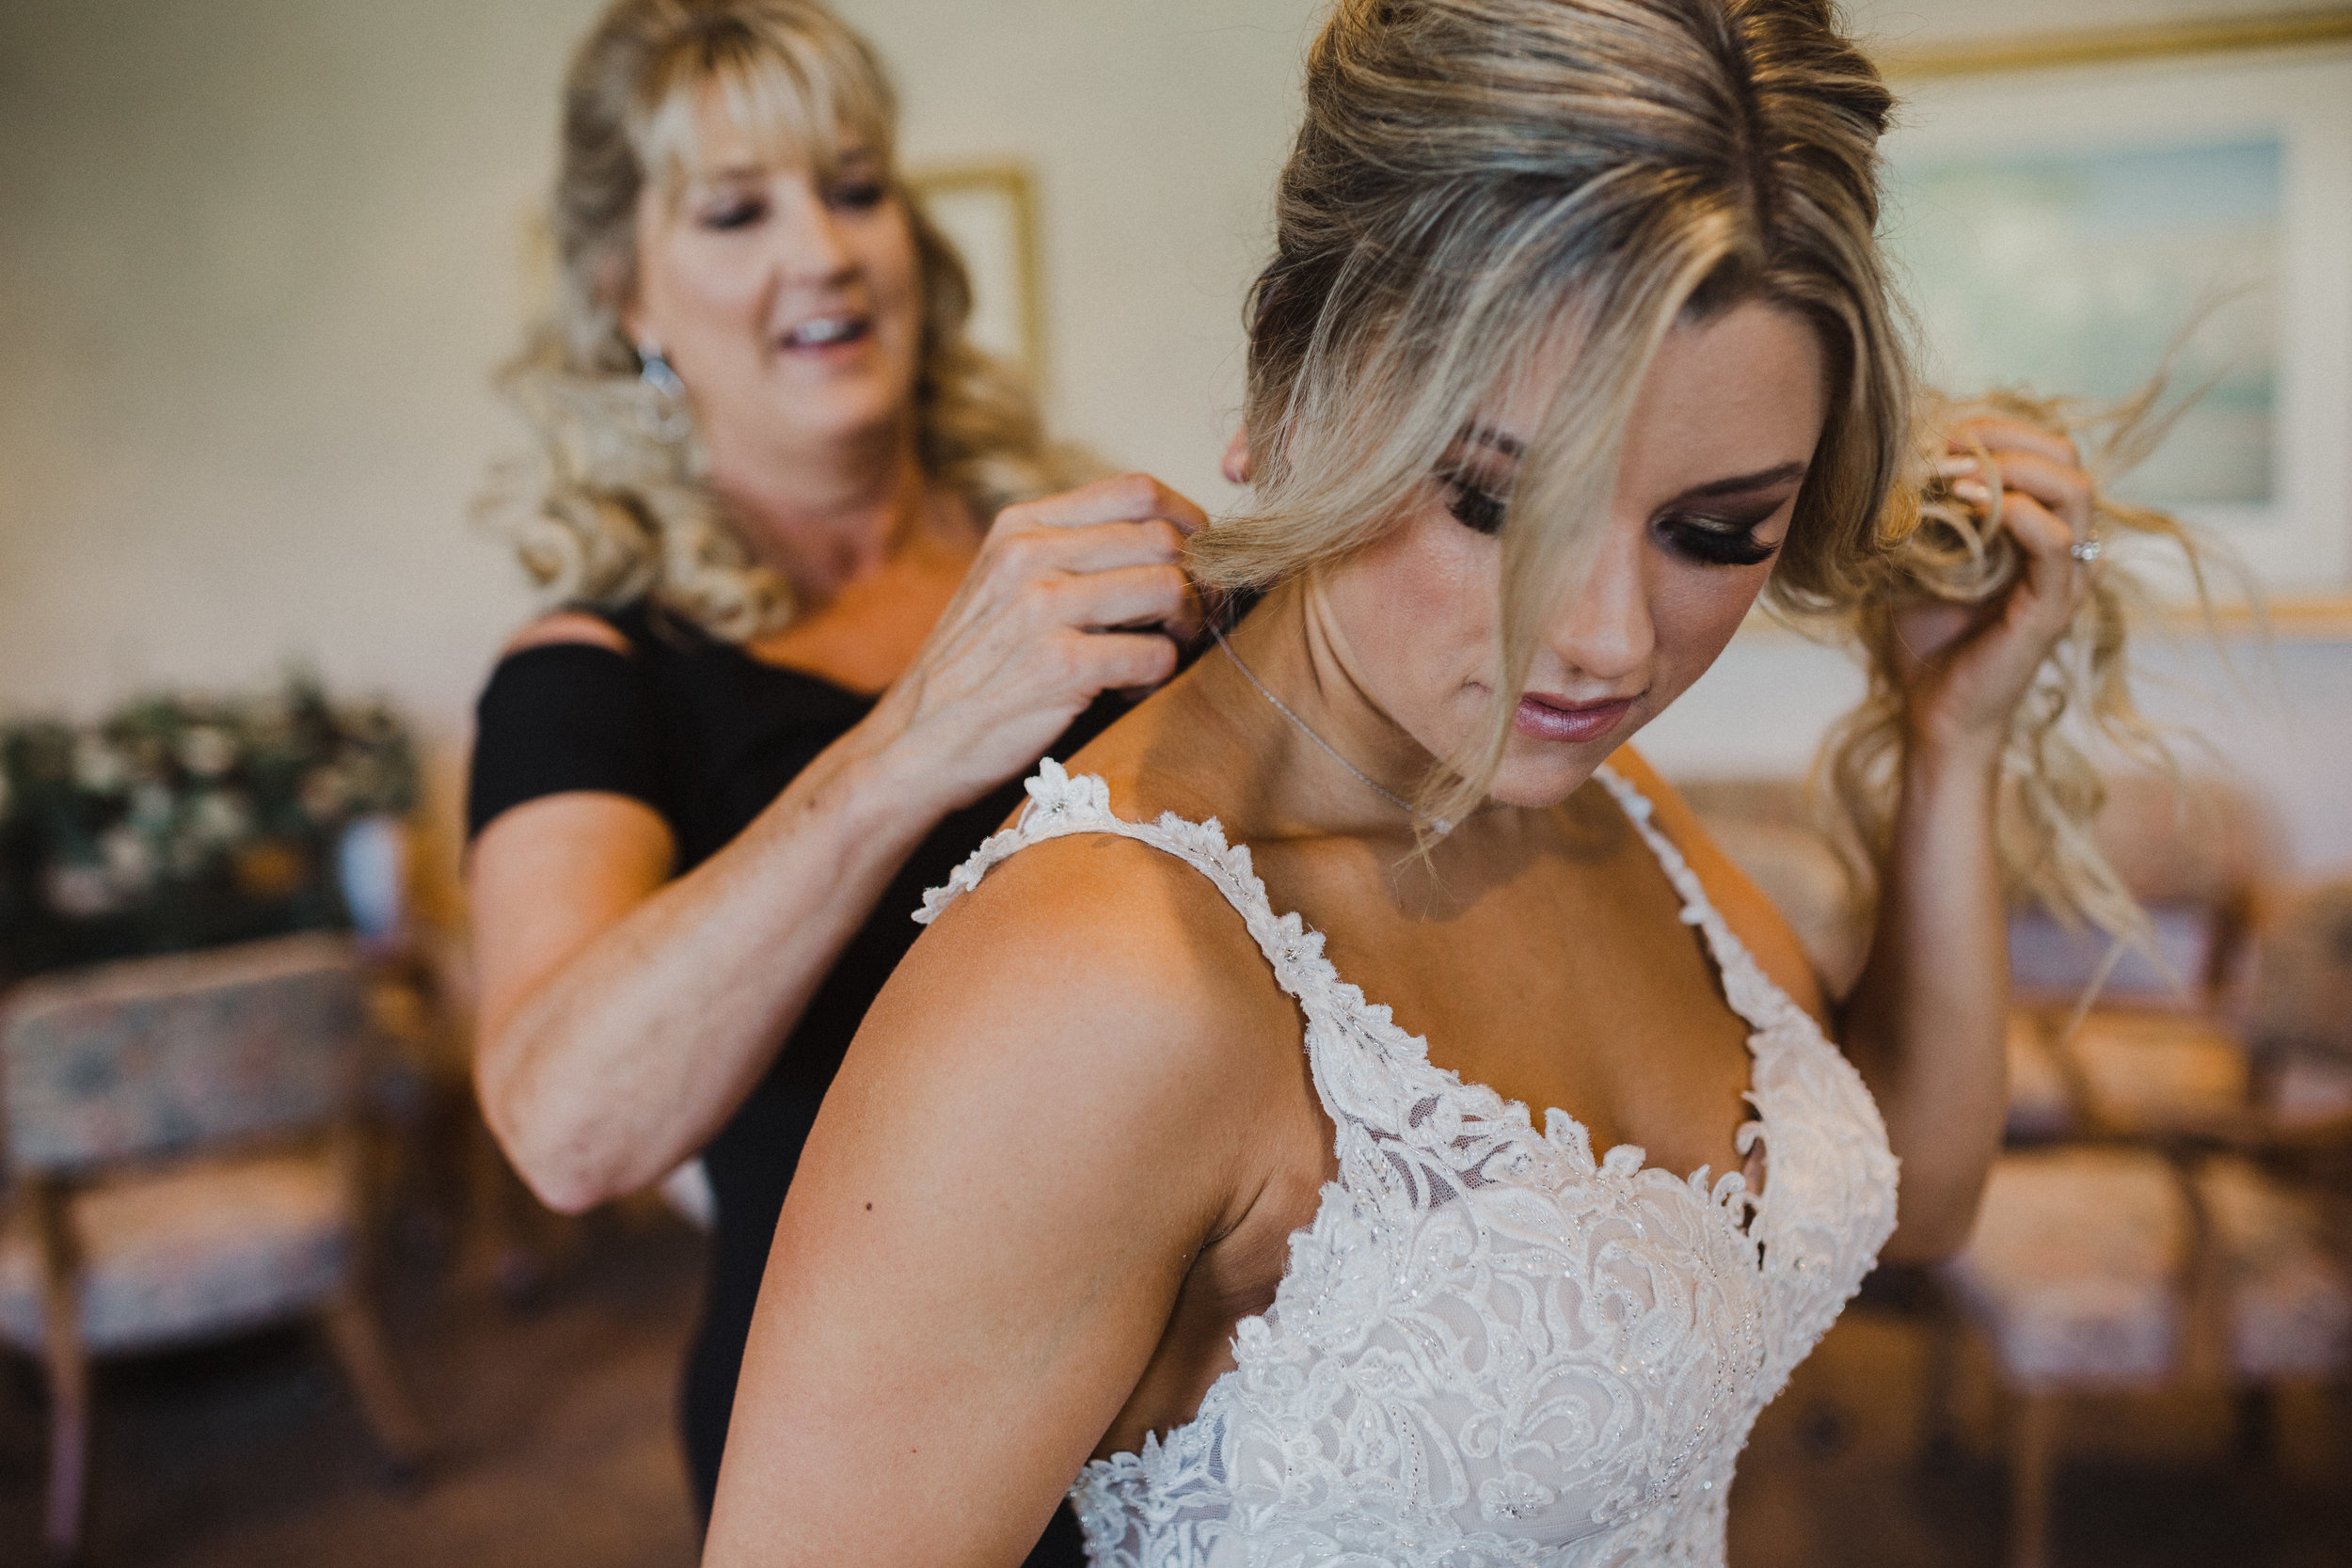 DianaLakePhoto-A+C-Wedding-GettingReady_80.jpg